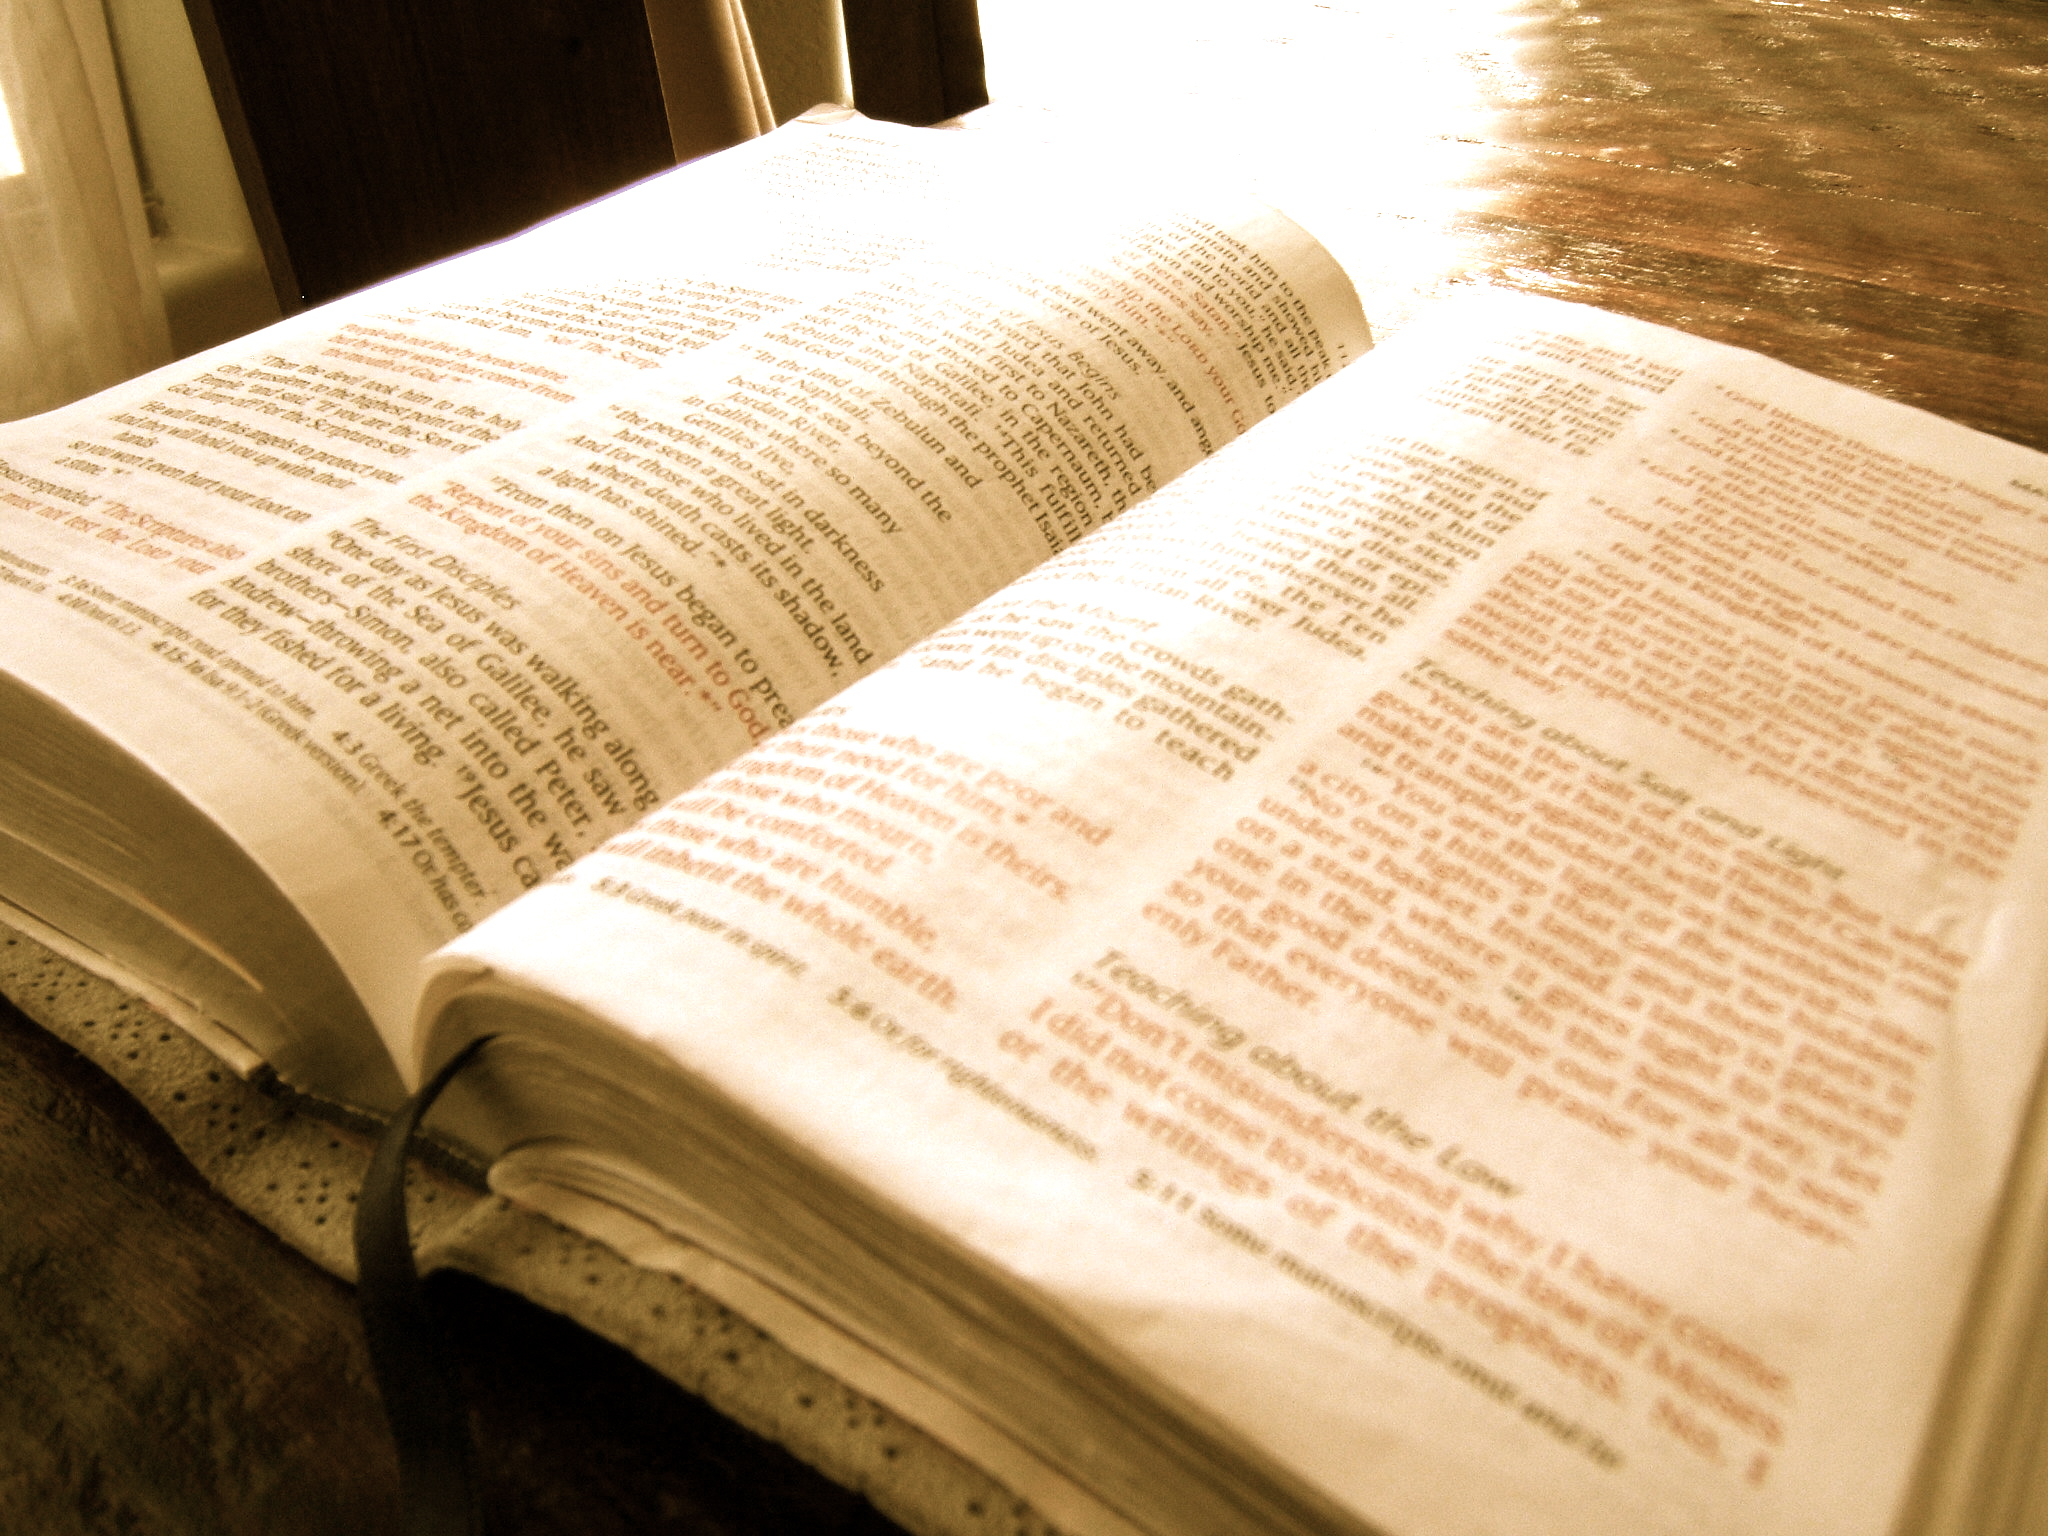 Harsh Light on the Bible